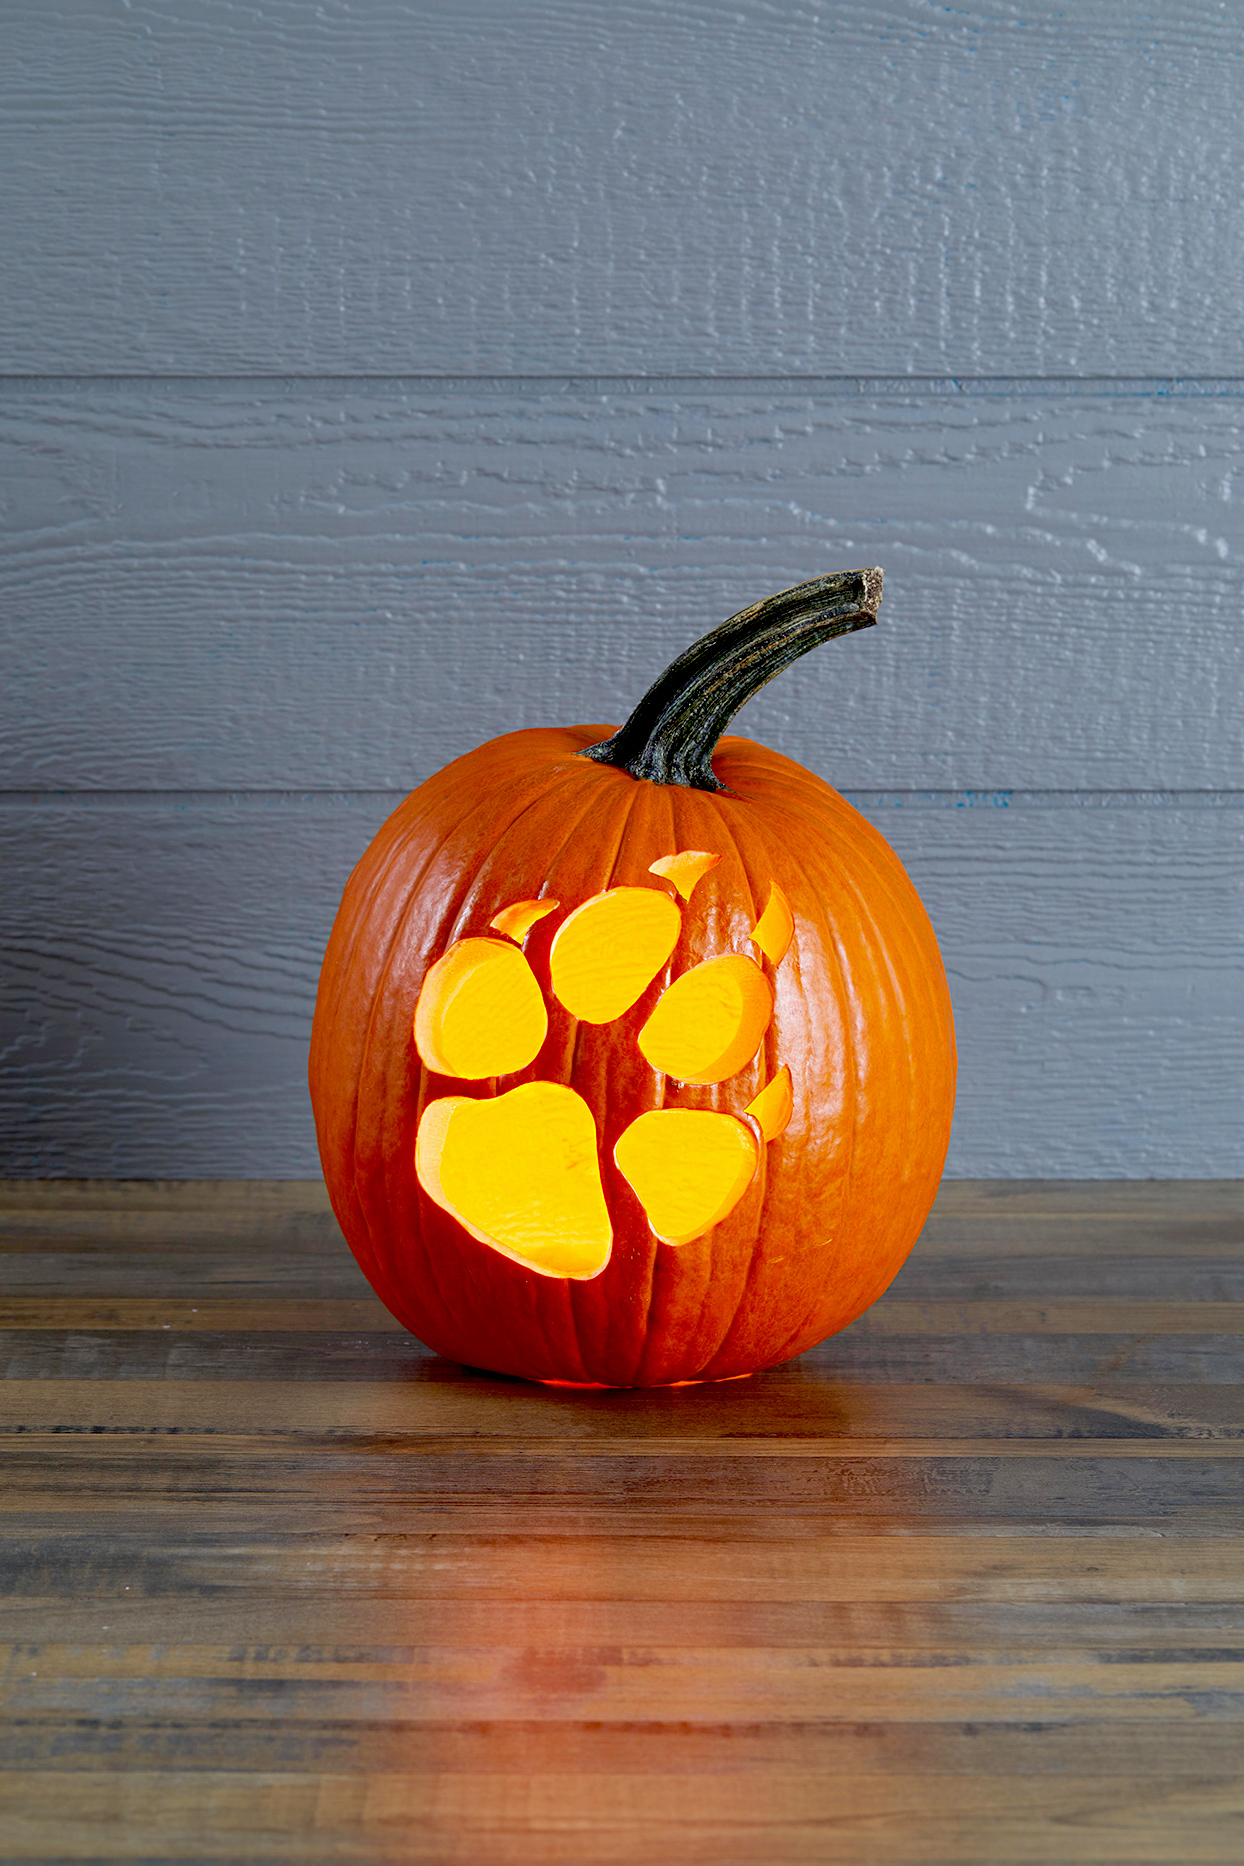 Pumpkin with paw print carving